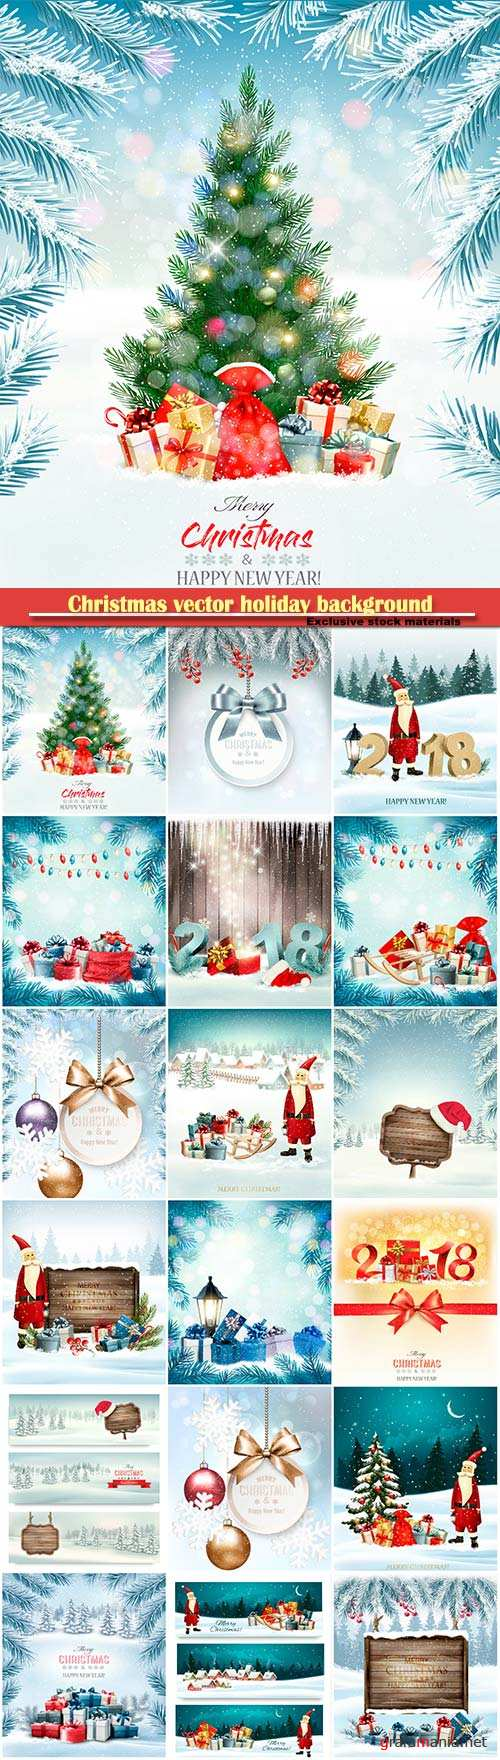 Christmas vector holiday background with presents and garland, holiday background with Christmas tree